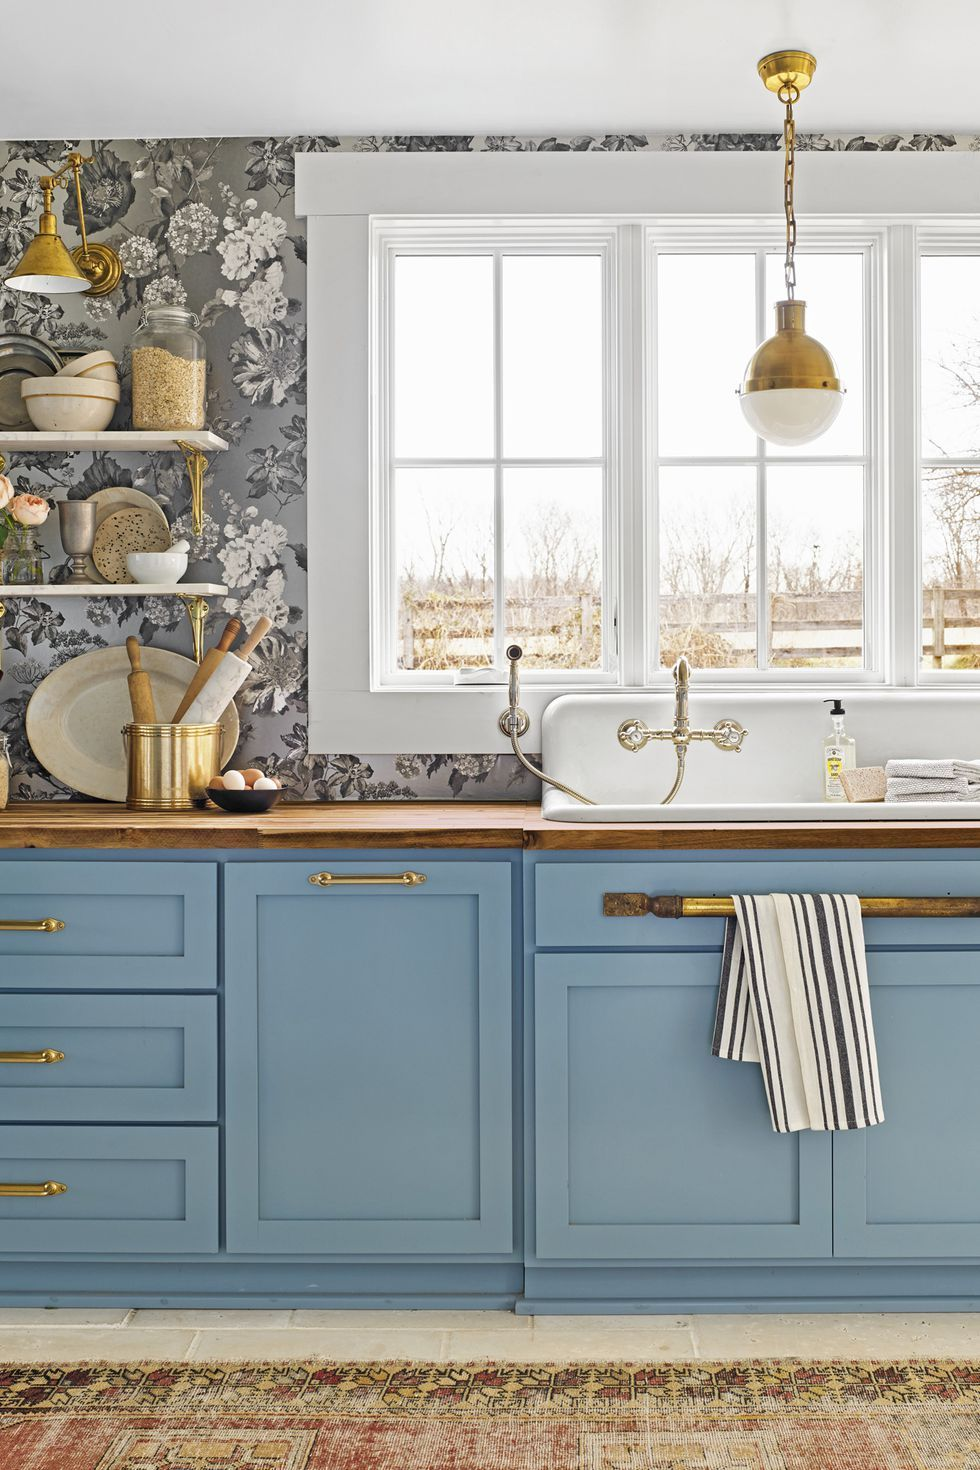 Bright colored kitchen trends for 2021